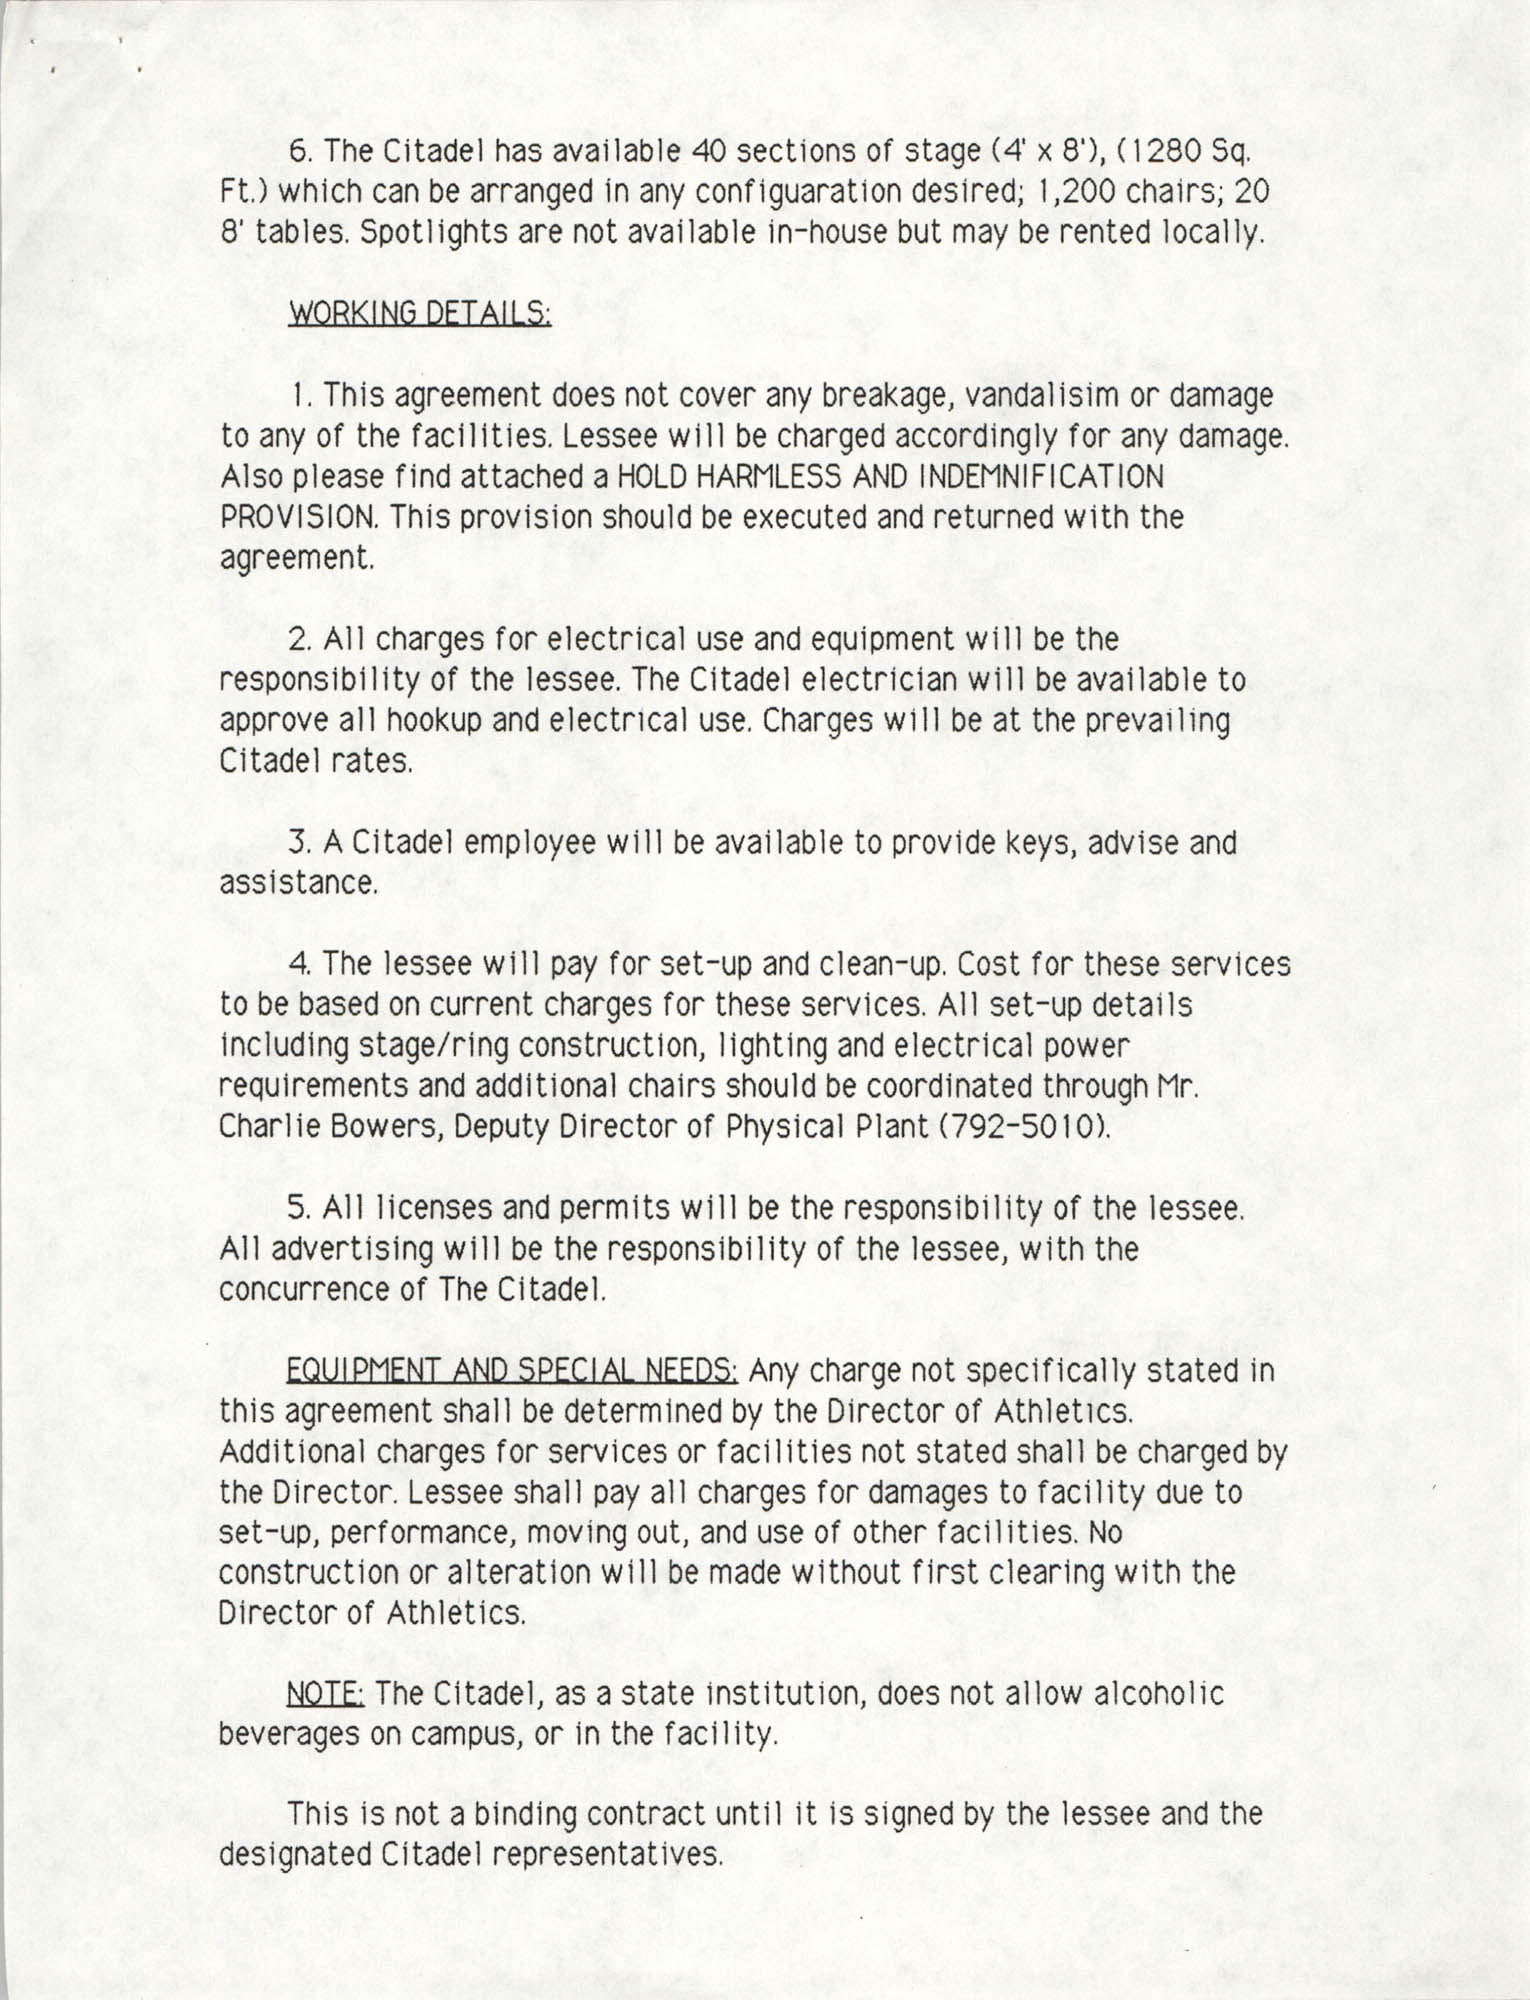 The Citadel Use of Facility Agreement, Page 3